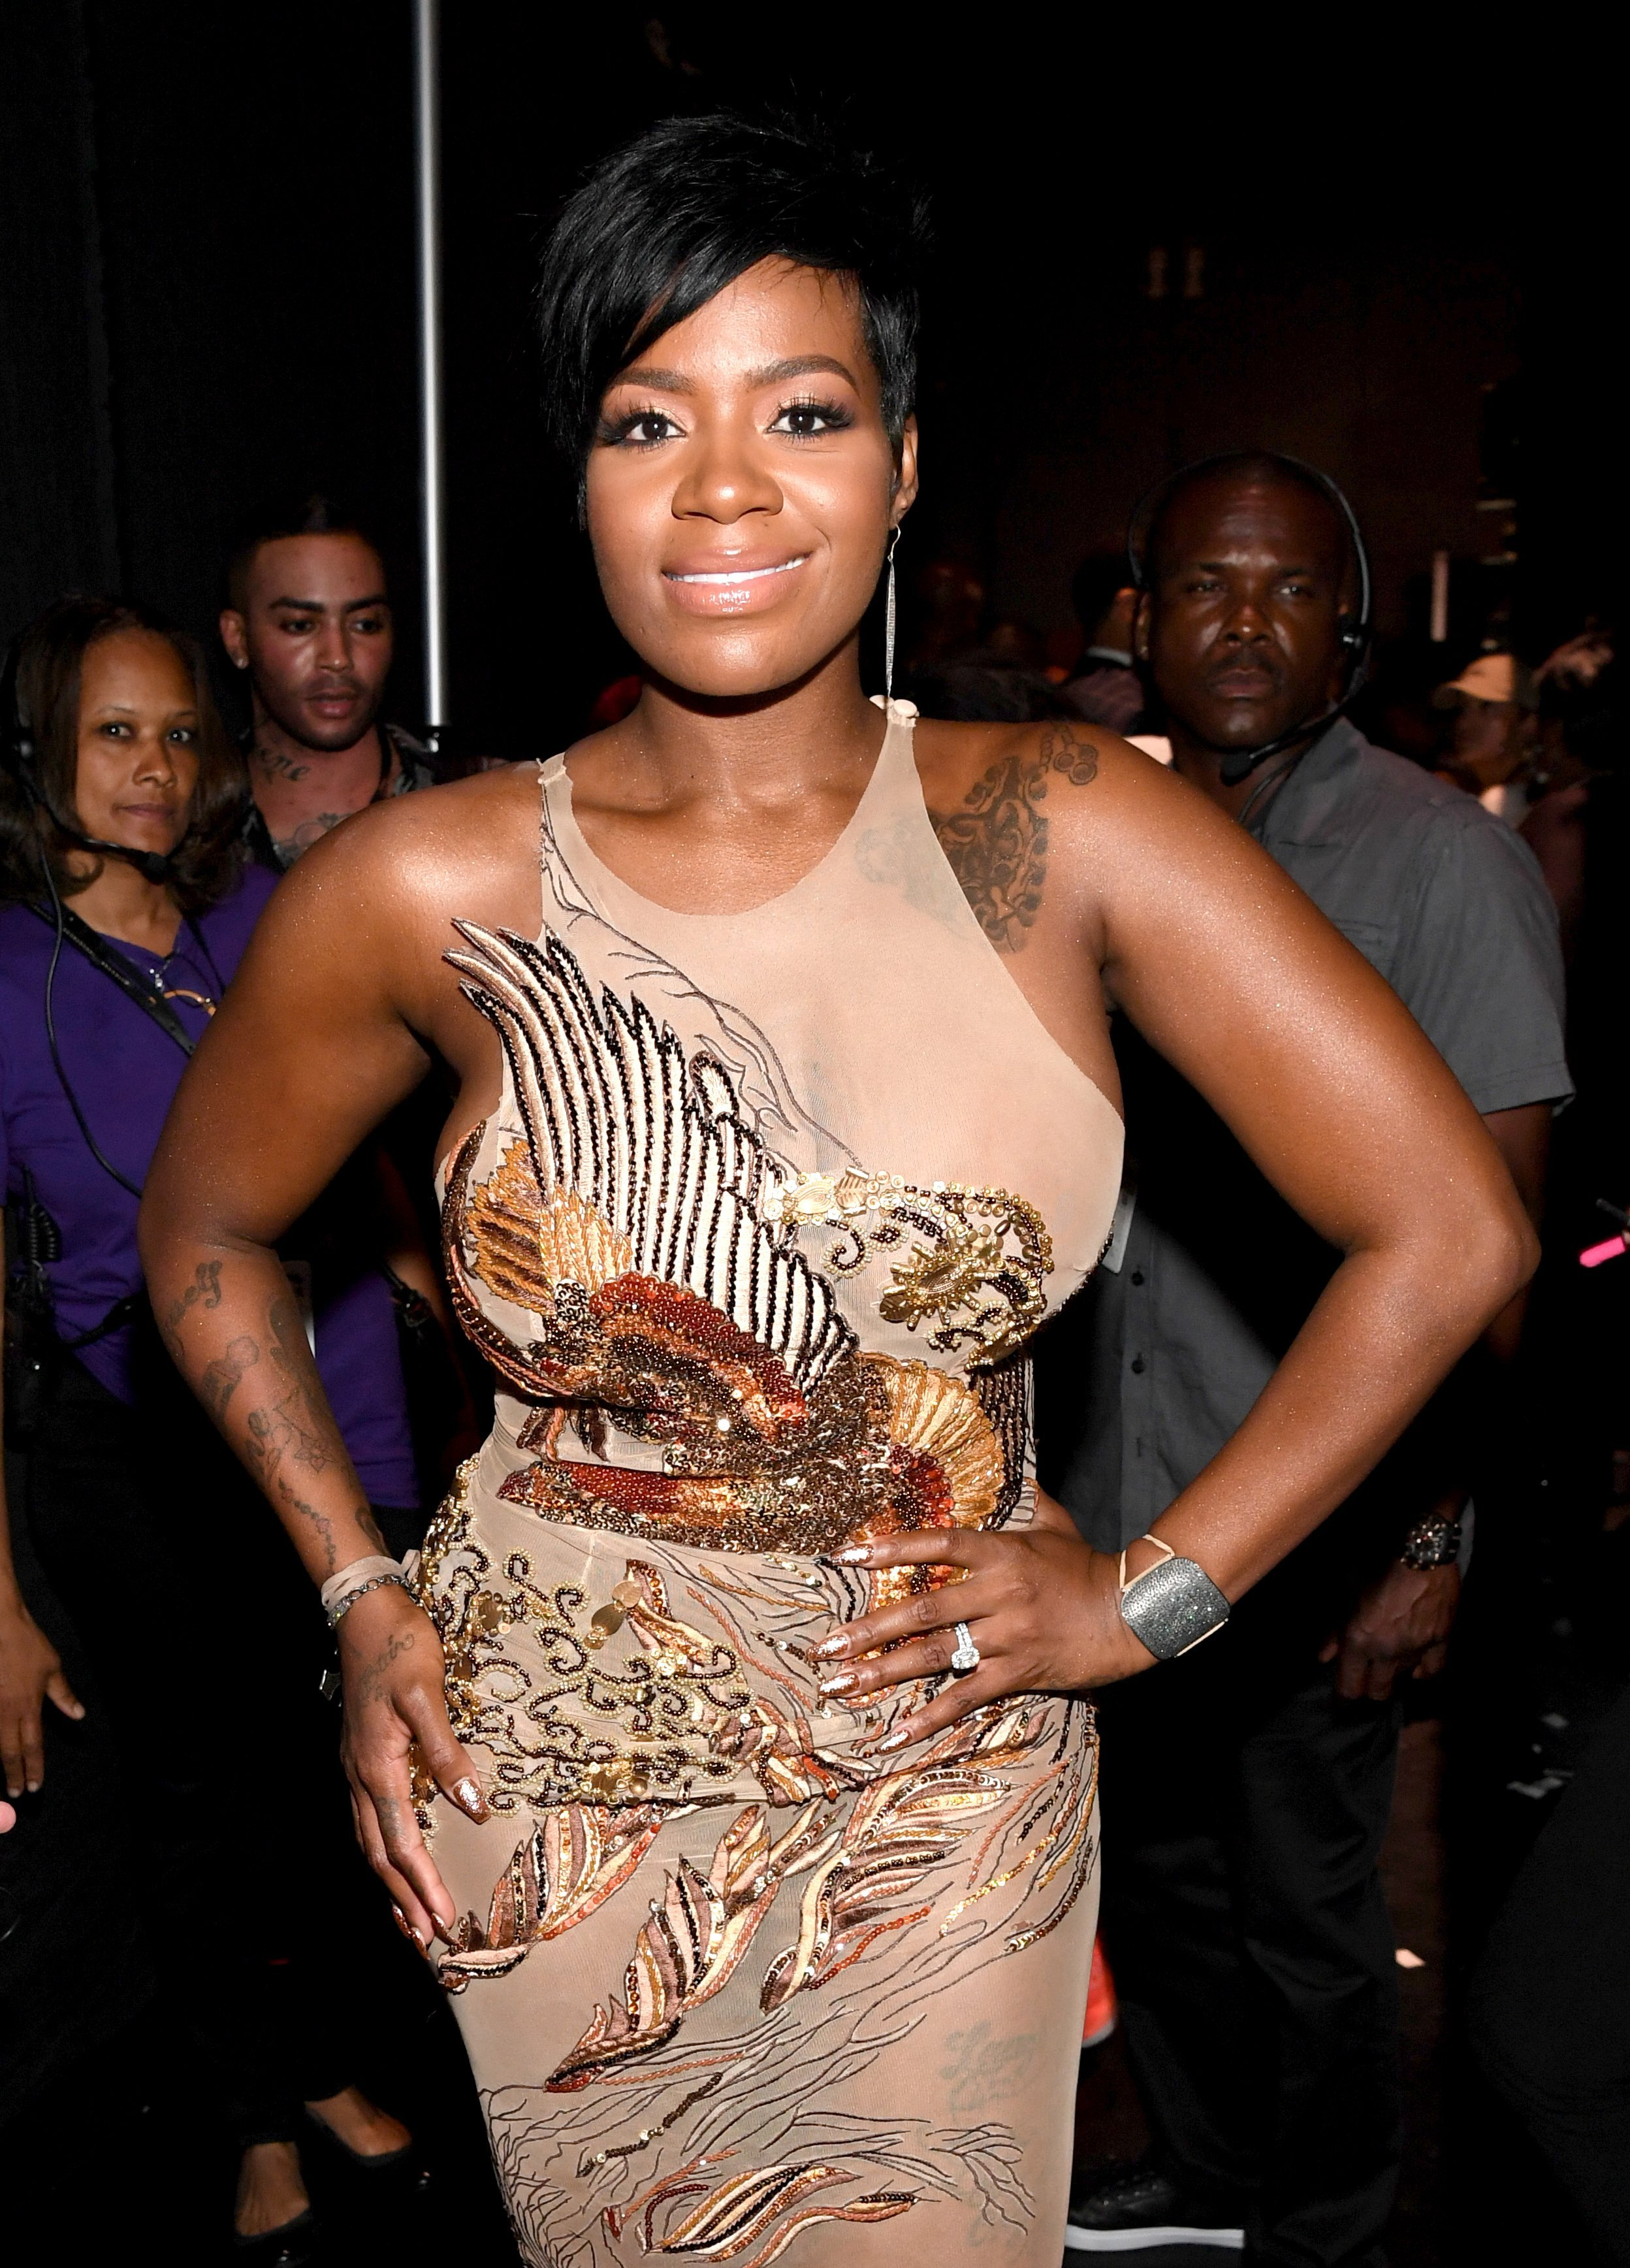 Fantasia Barrino at the BET Awards on June 26, 2016 in California | Photo: Getty Images